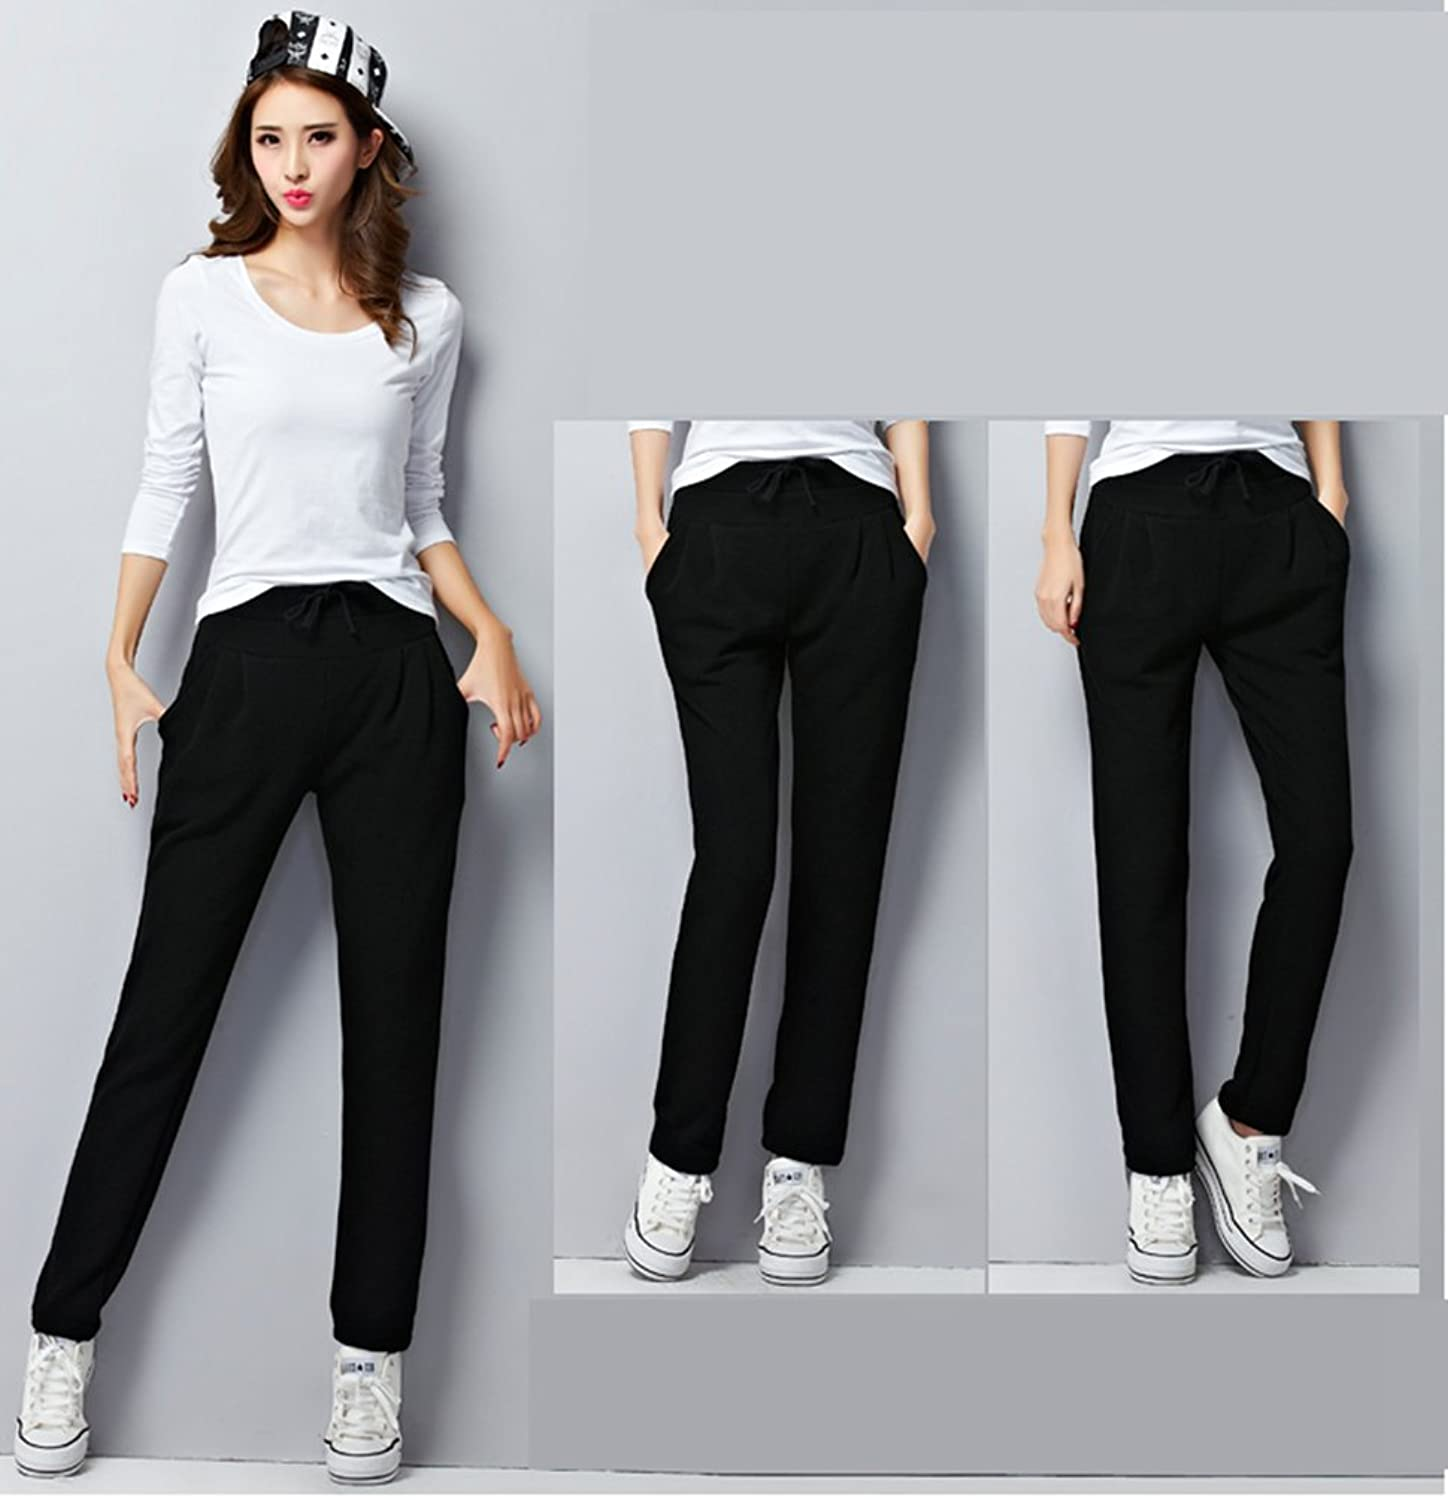 YAANCUN Ladies Womens Elasticated Winter Warm Trouser Stretch Waist Casual  Loose Trousers Sports Pants with Pockets Plus Size: Amazon.co.uk: Clothing